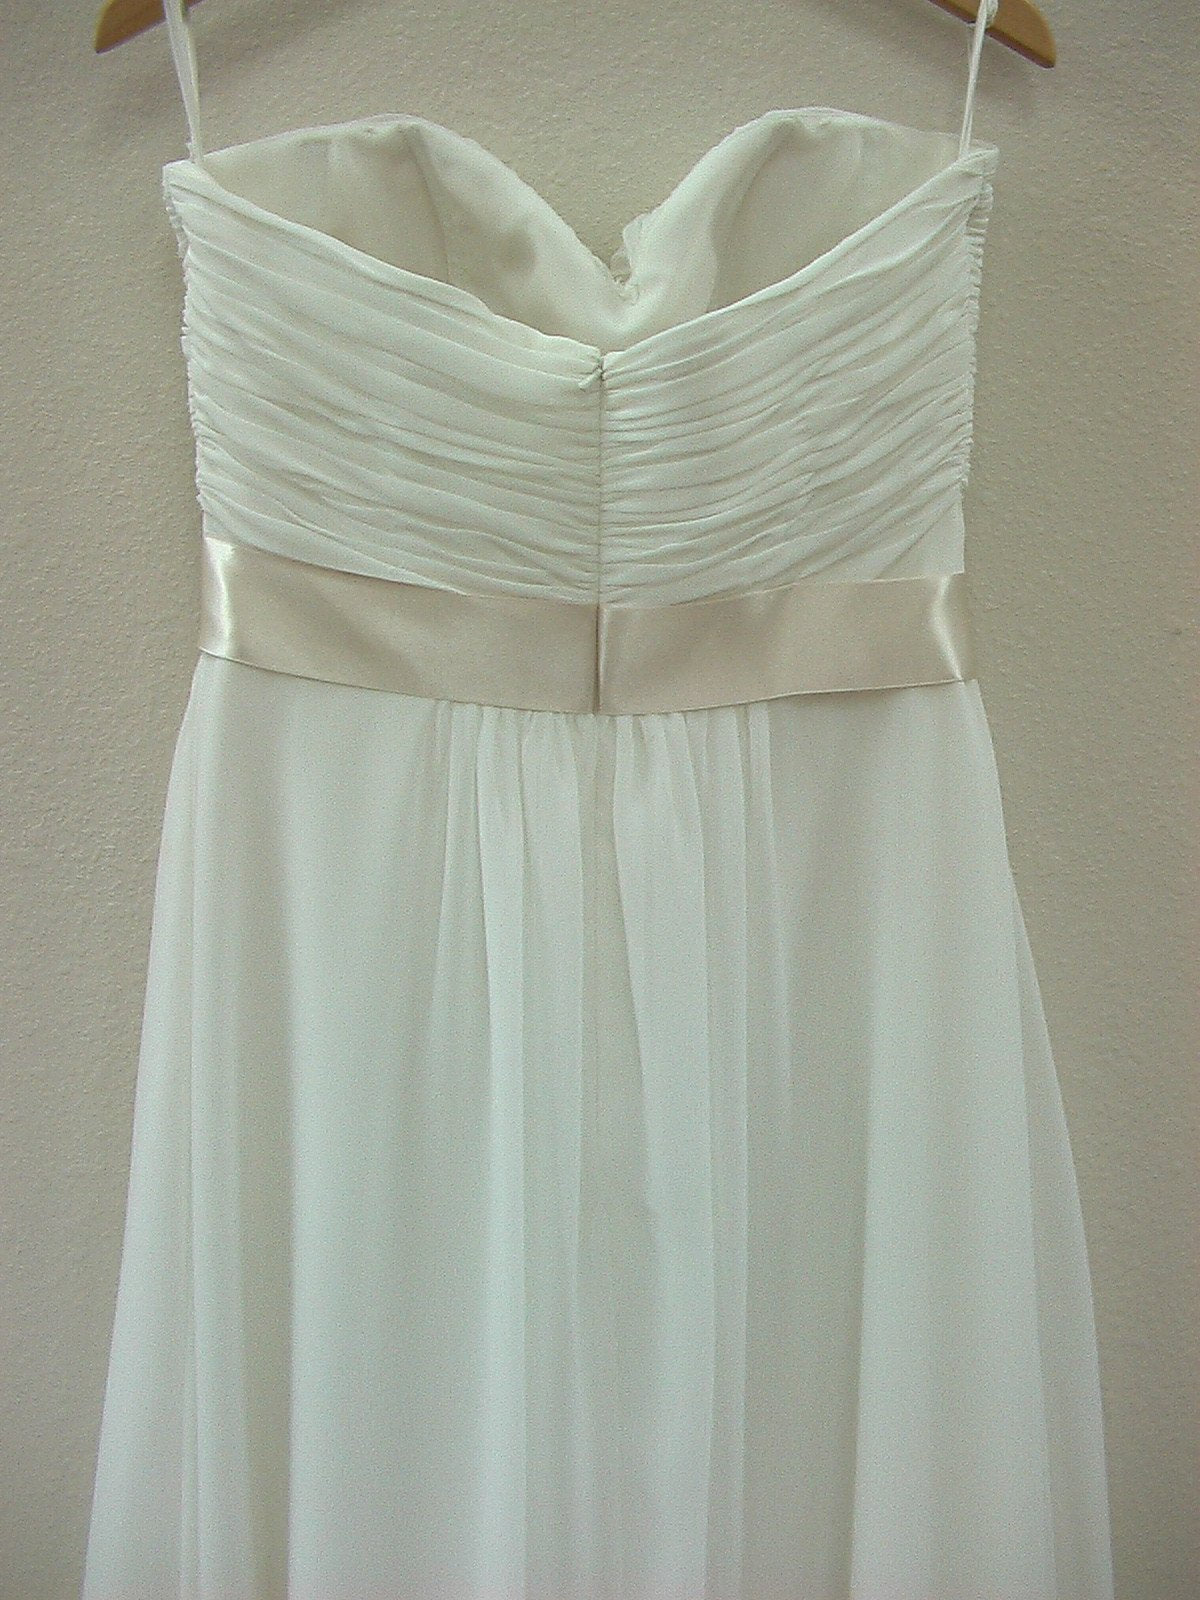 Jacquelin Exclusive 19836 Ivory/Silver size 12 In Stock Wedding Dress - Tom's Bridal